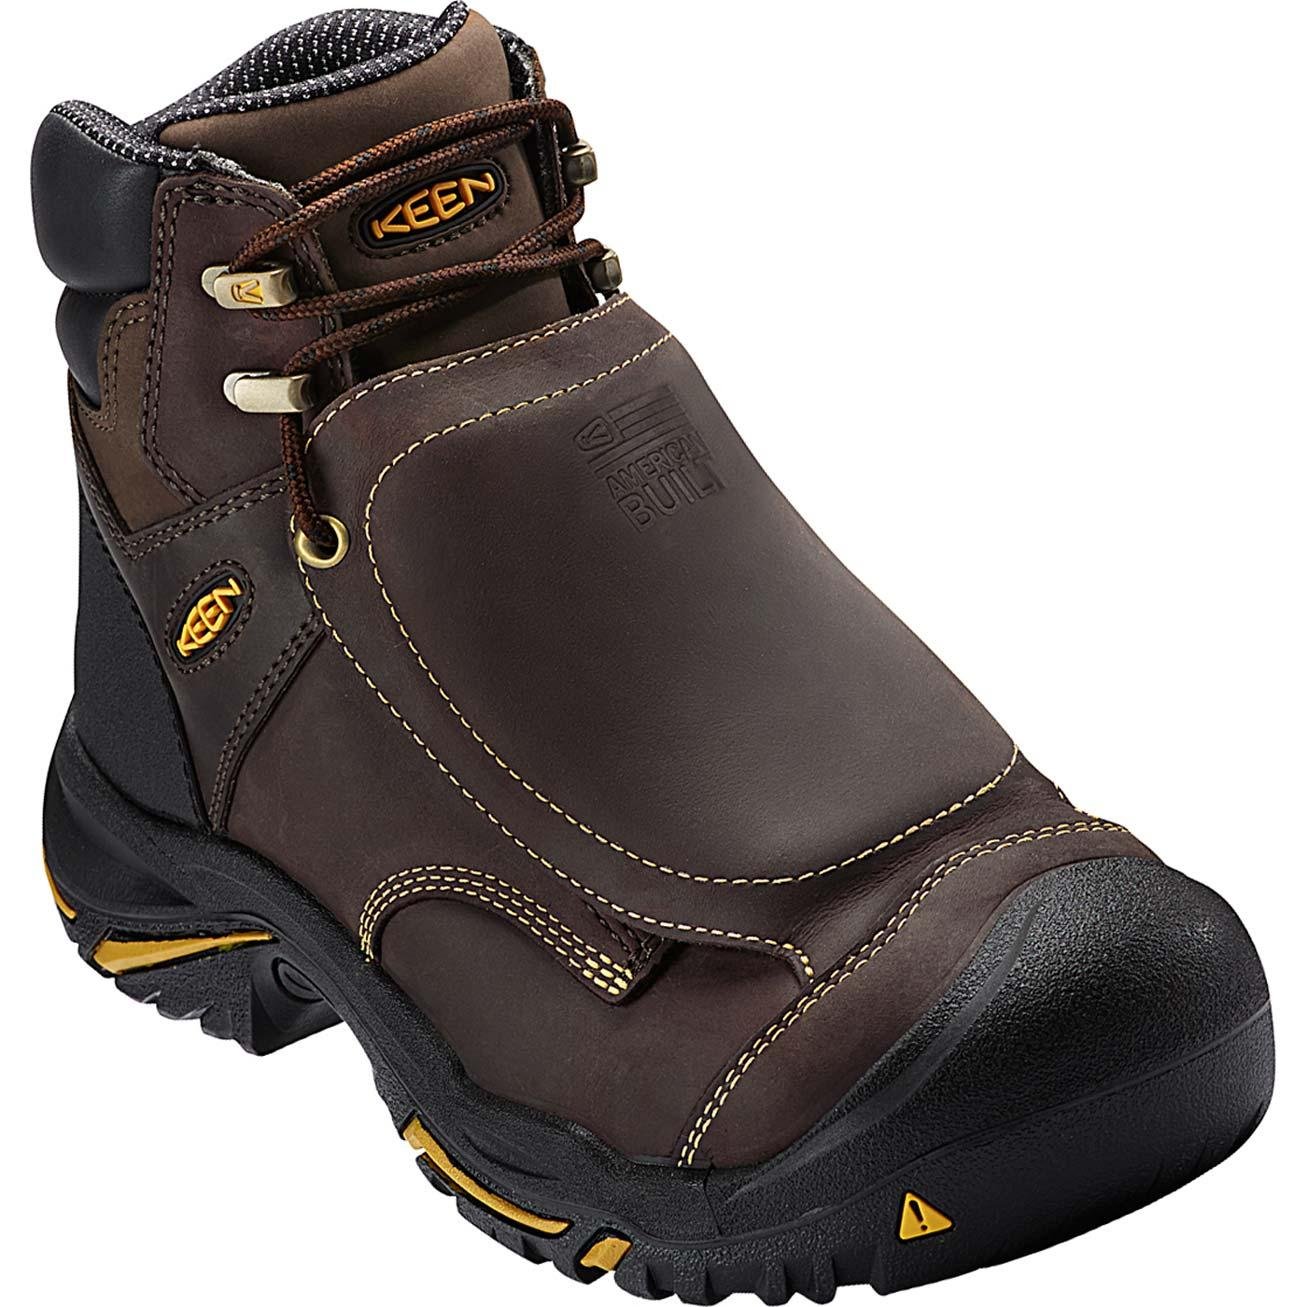 Keen Mt Vernon Steel Toe Met Guard Waterproof Work Boot